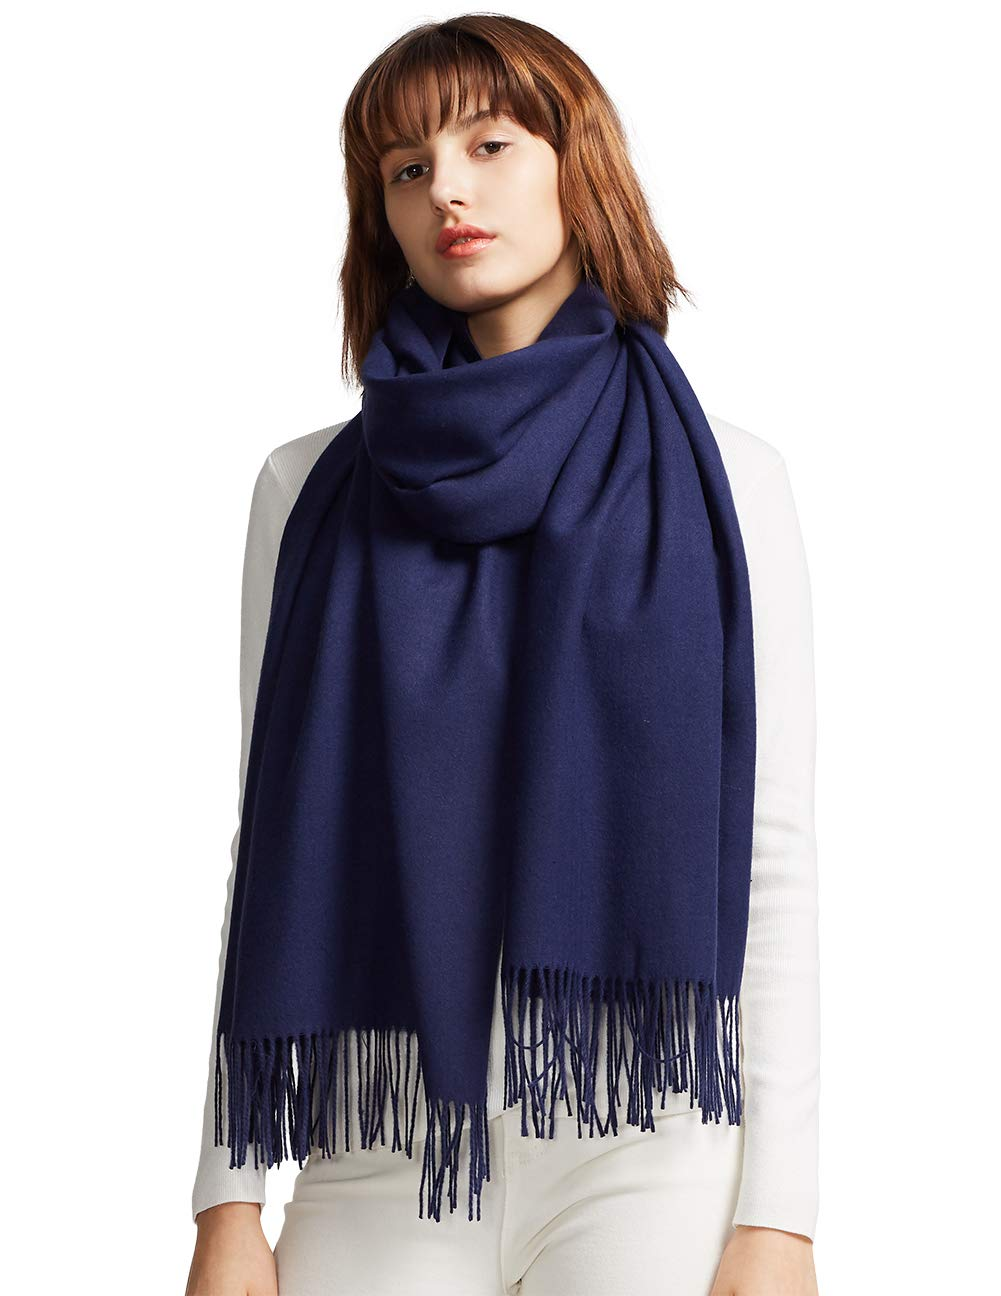 MaaMgic Womens Large Soft Cashmere Feel Pashmina Shawls Wraps Light Scarf